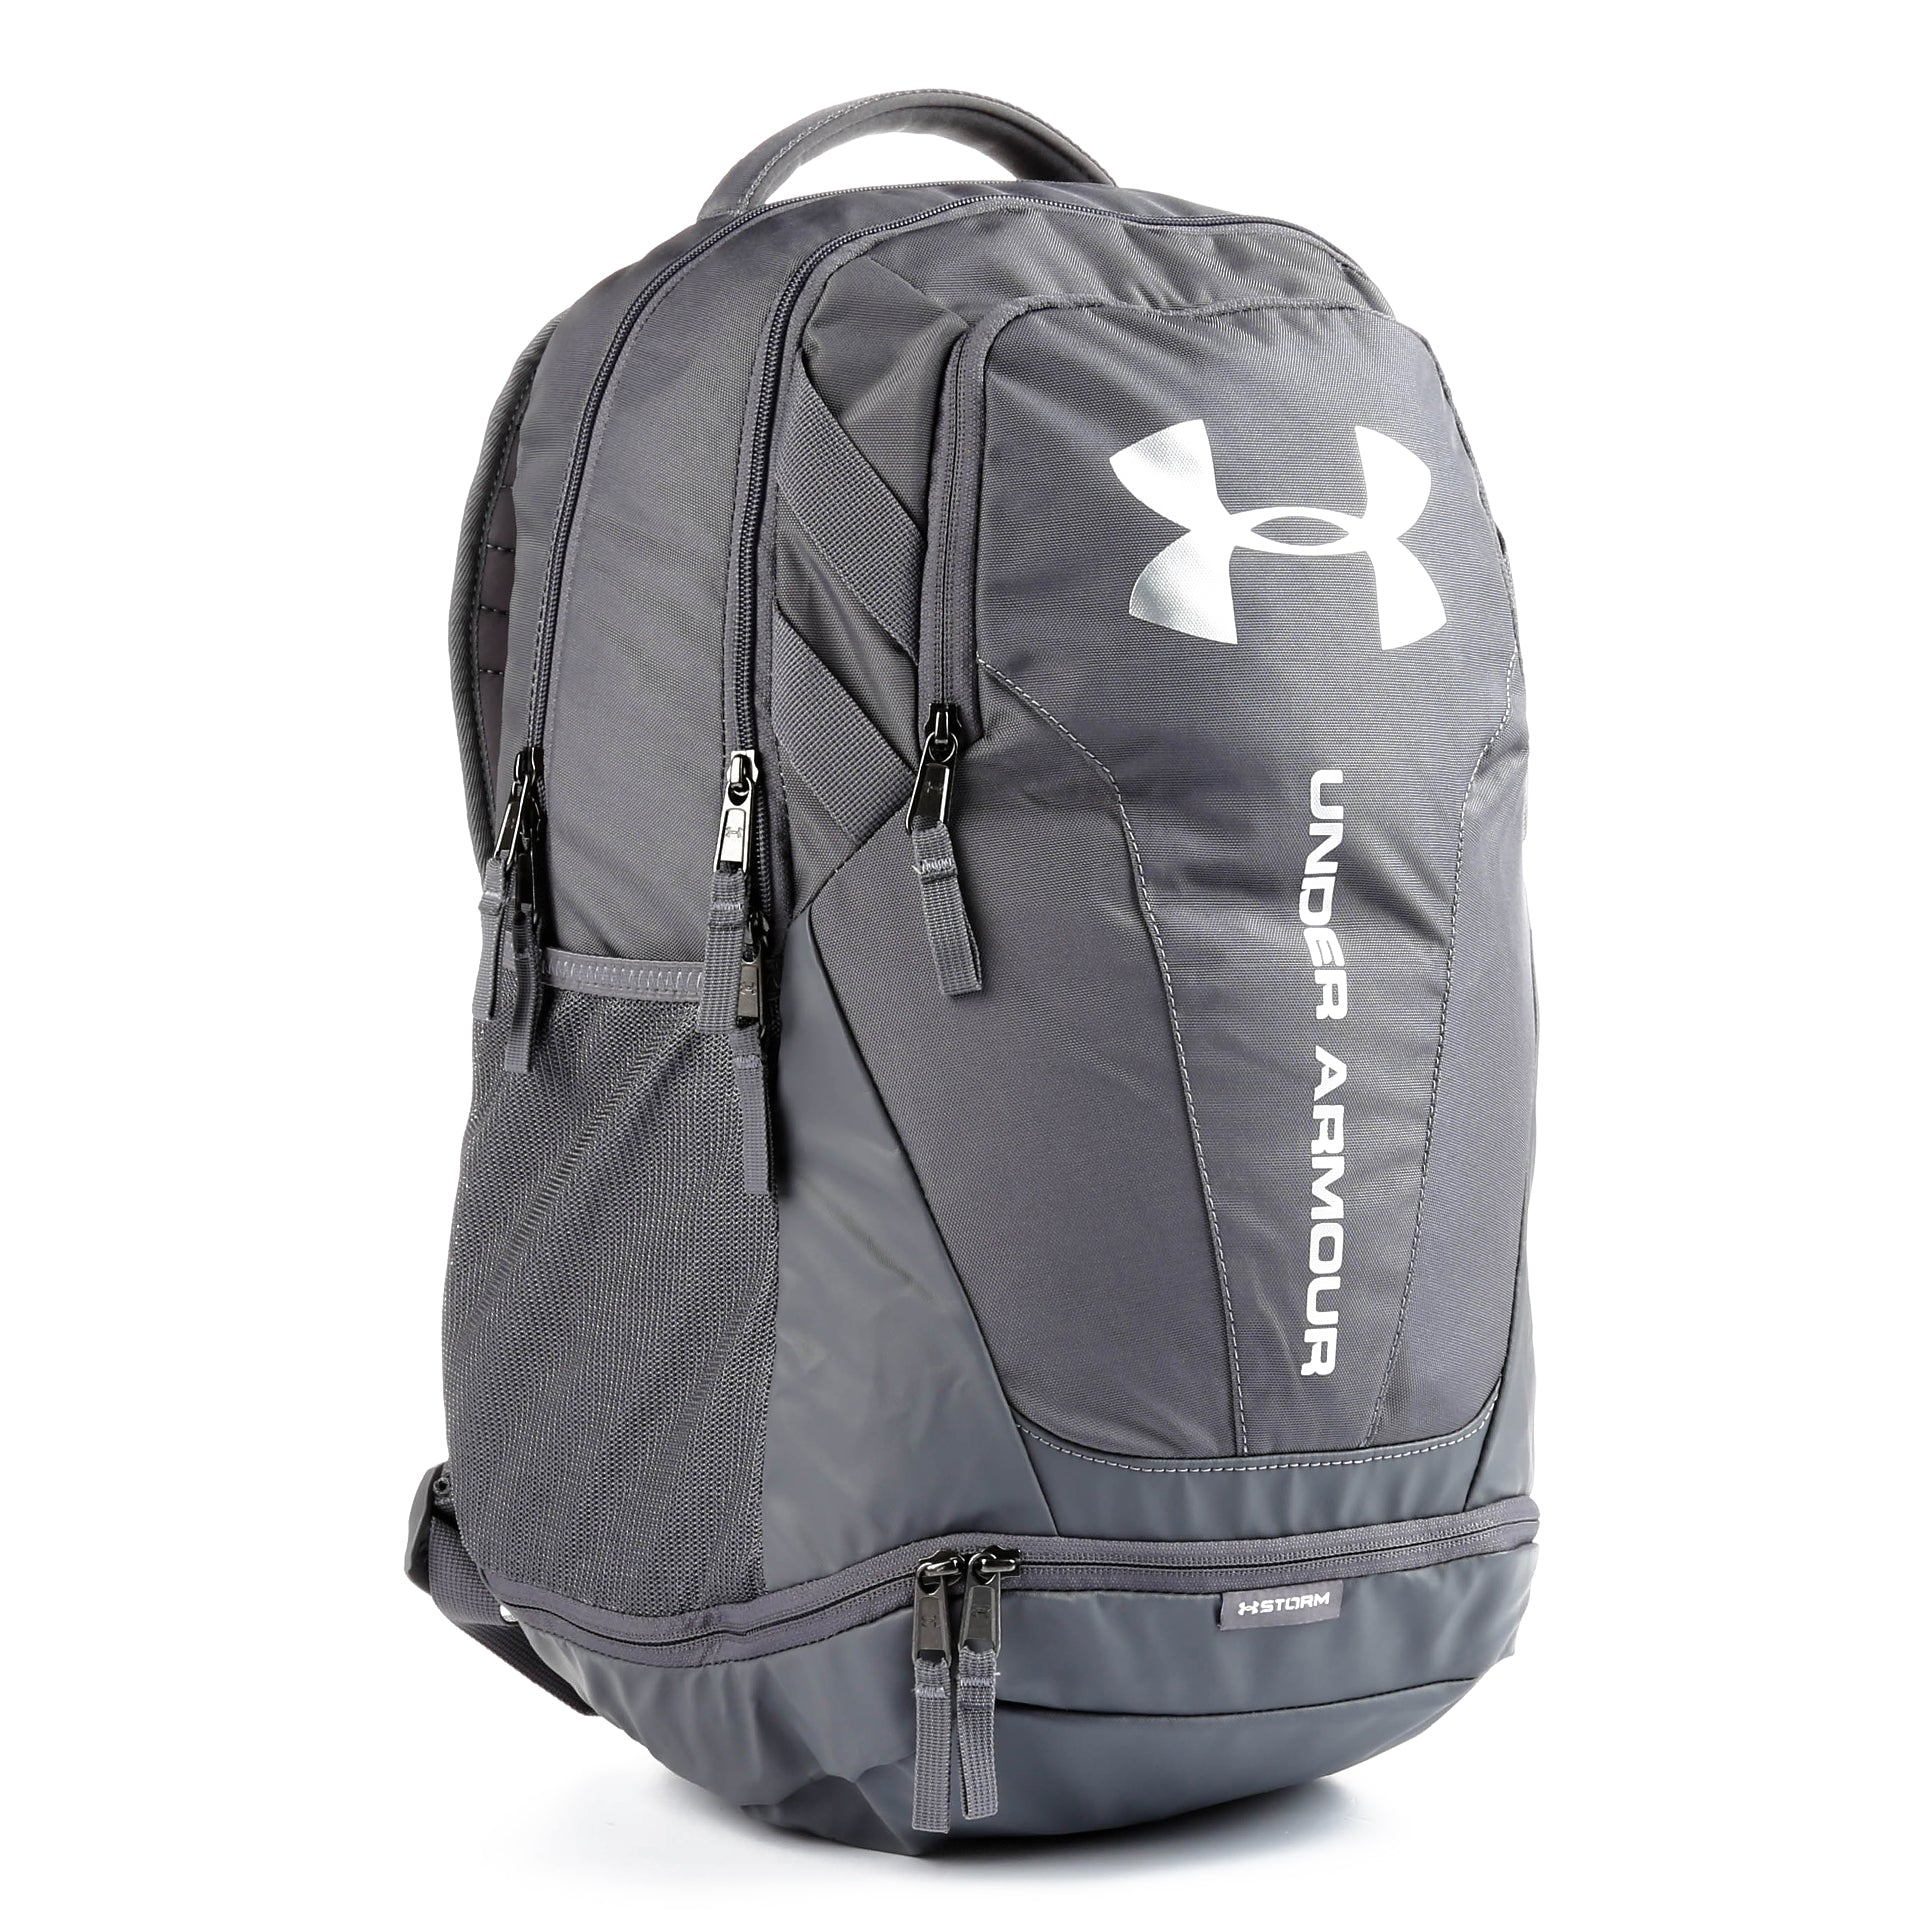 0bc79c0ef6 Under Armour Hustle 3.0 Backpack - Graphite - New Star